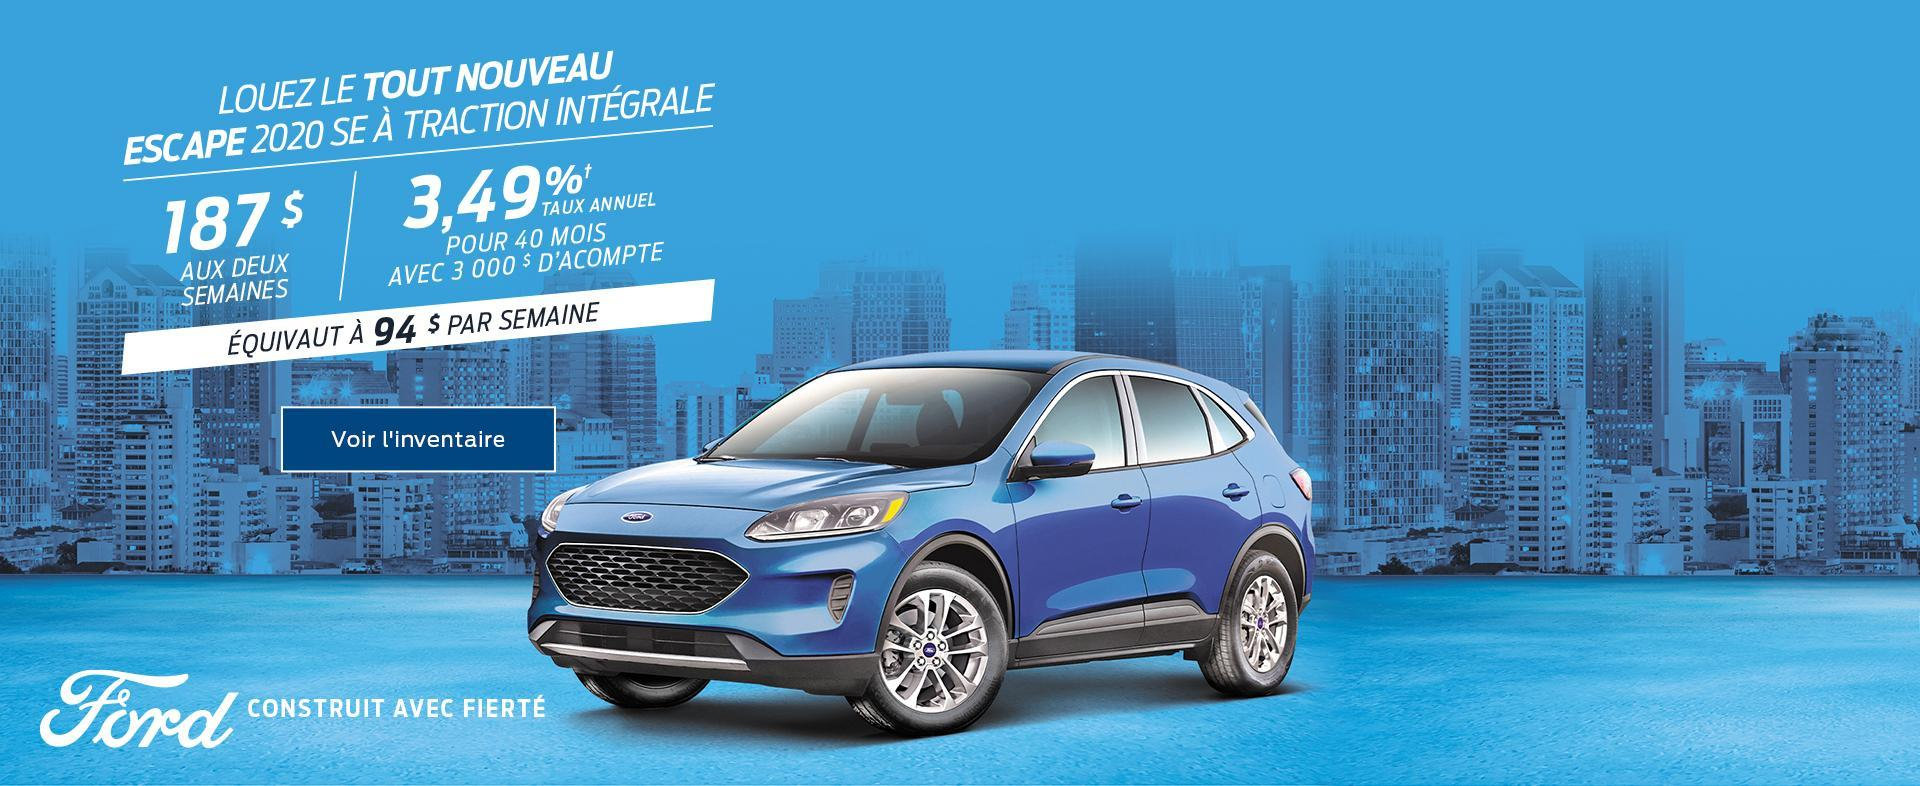 2019 Ford Escape Year End Sales Event